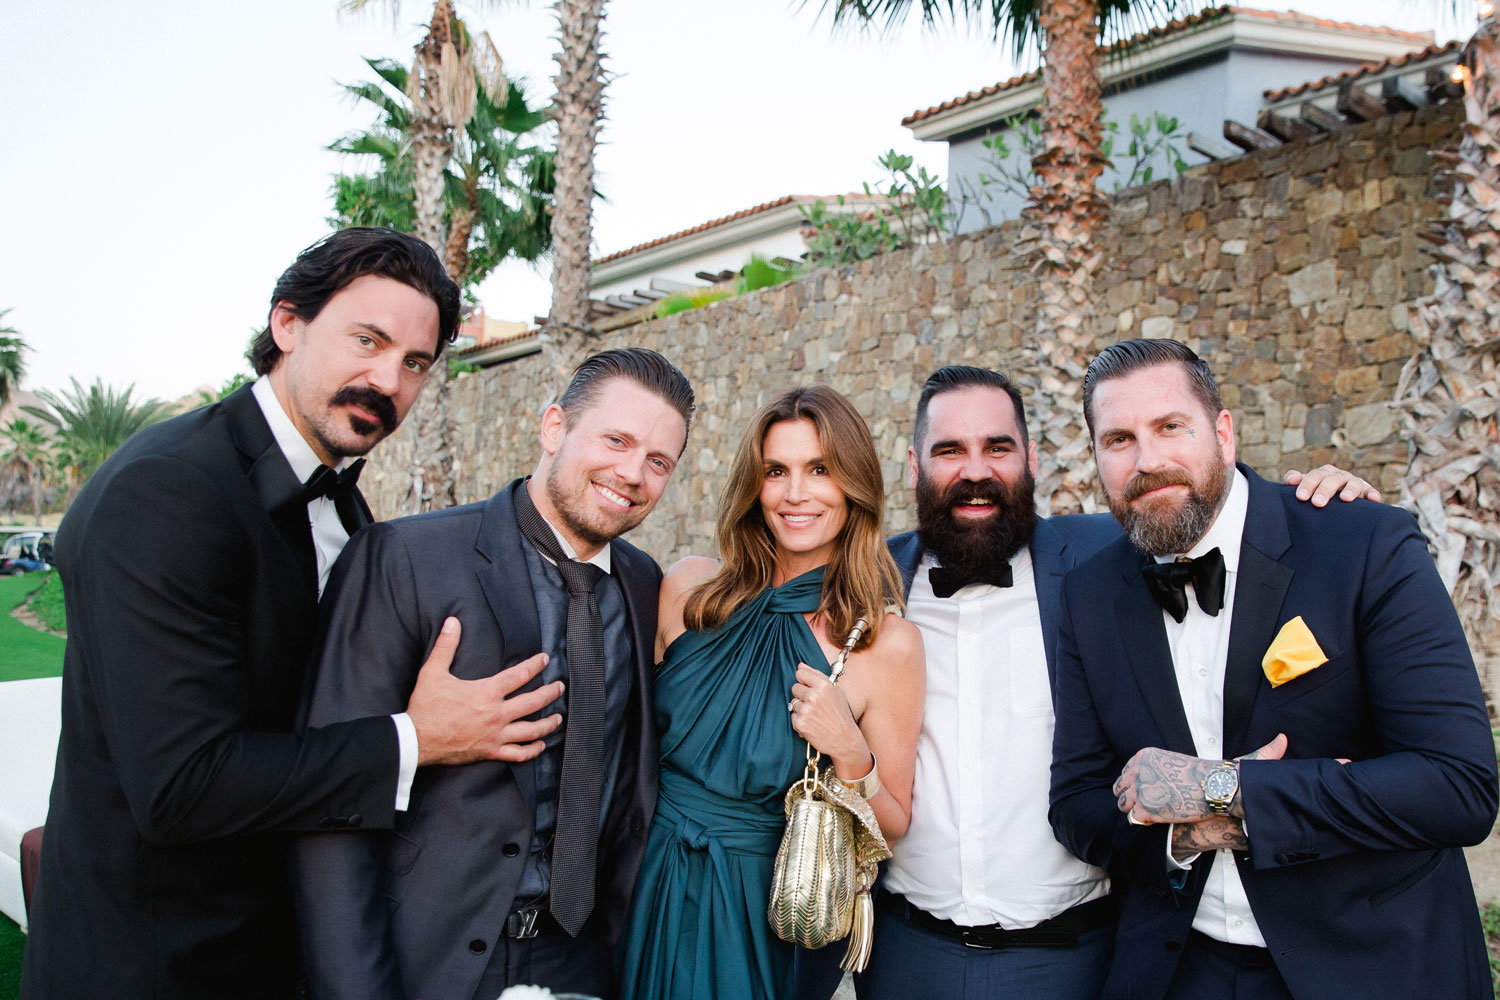 how to be a great plus one at a wedding, cindy crawford, tips for being a plus one wedding guest